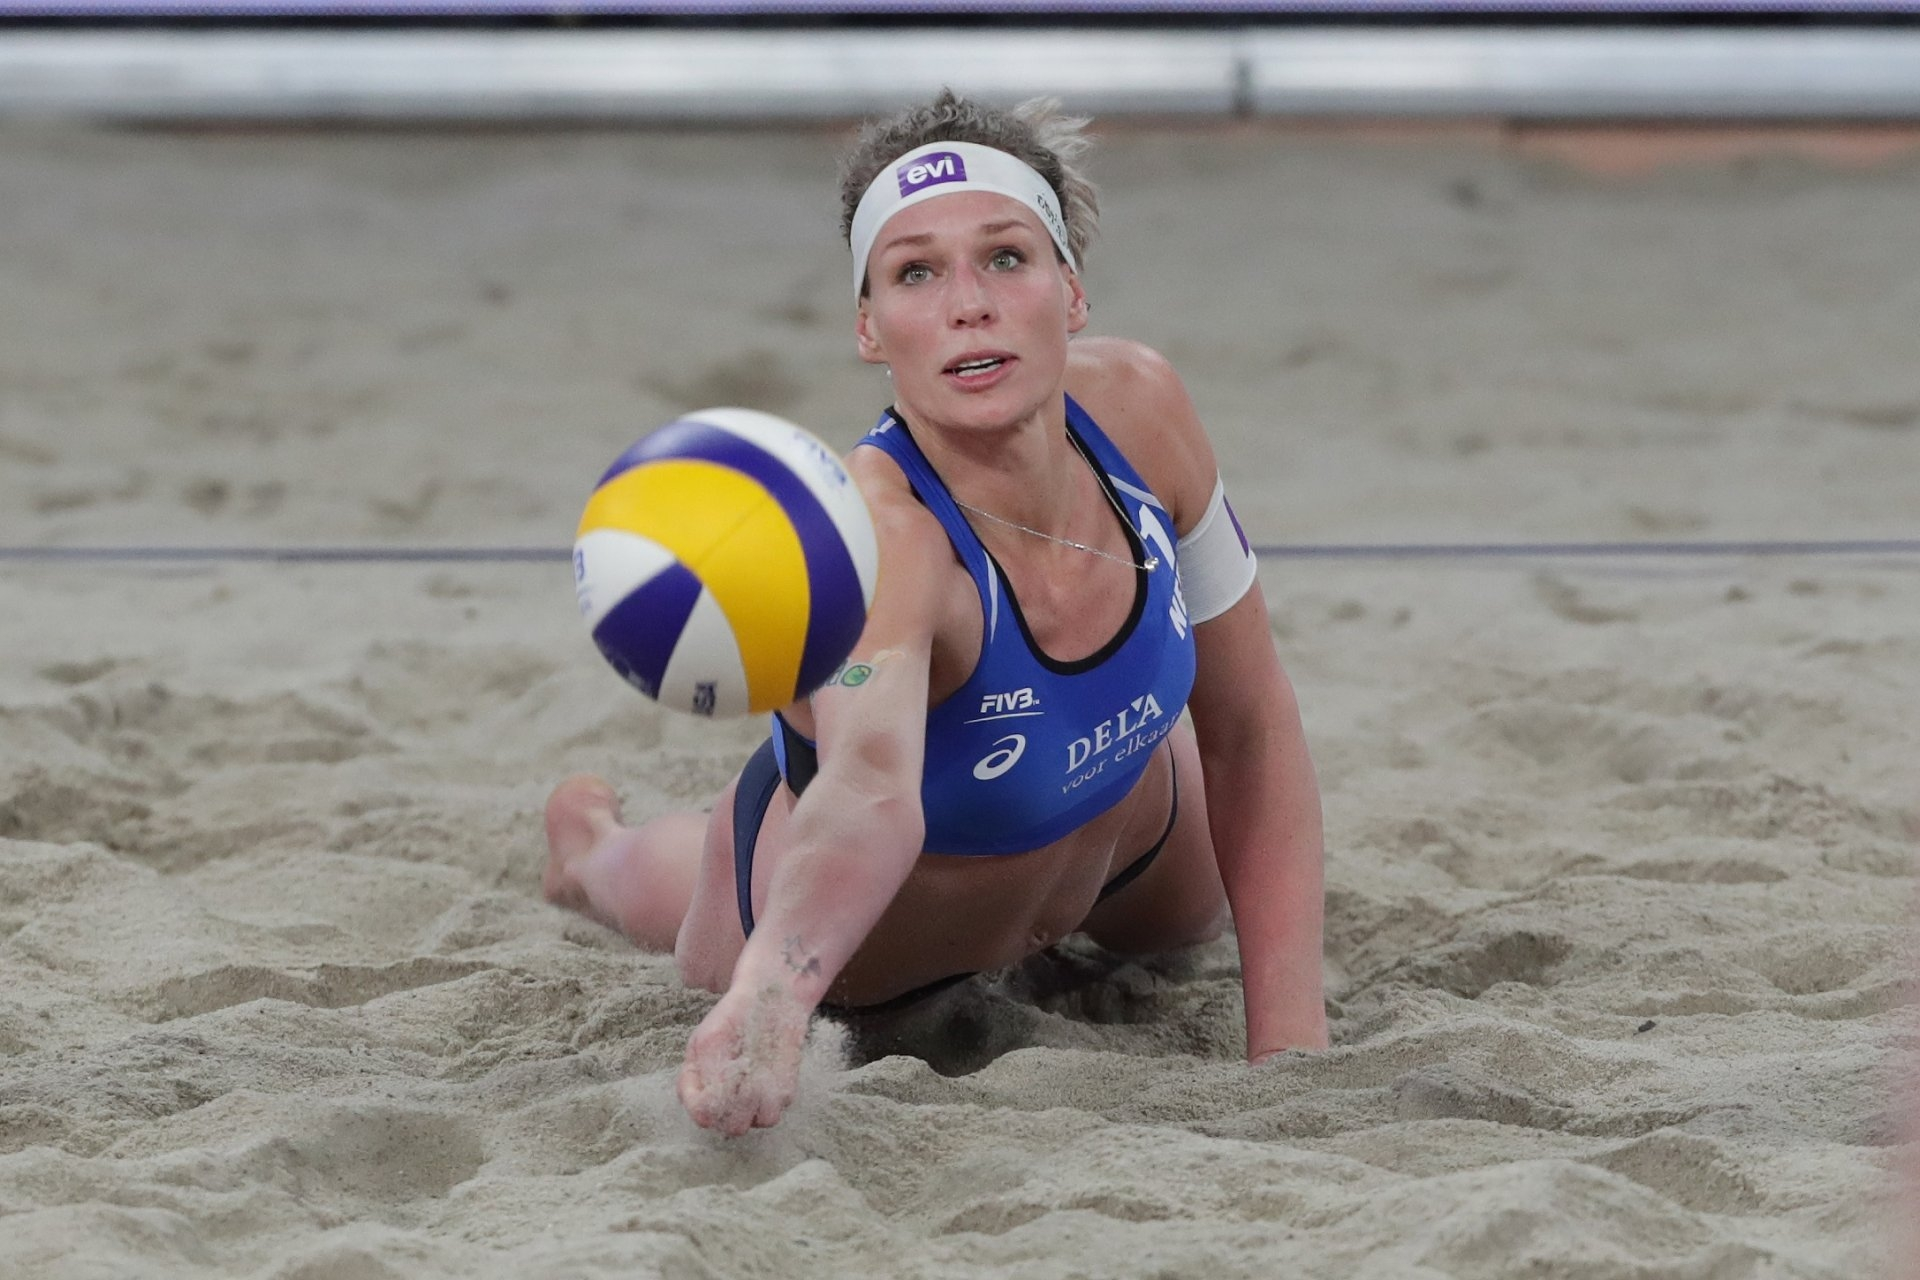 Sanne Keizer will debut in the Beach Major Series in Fort Lauderdale (Photocredit: FIVB)